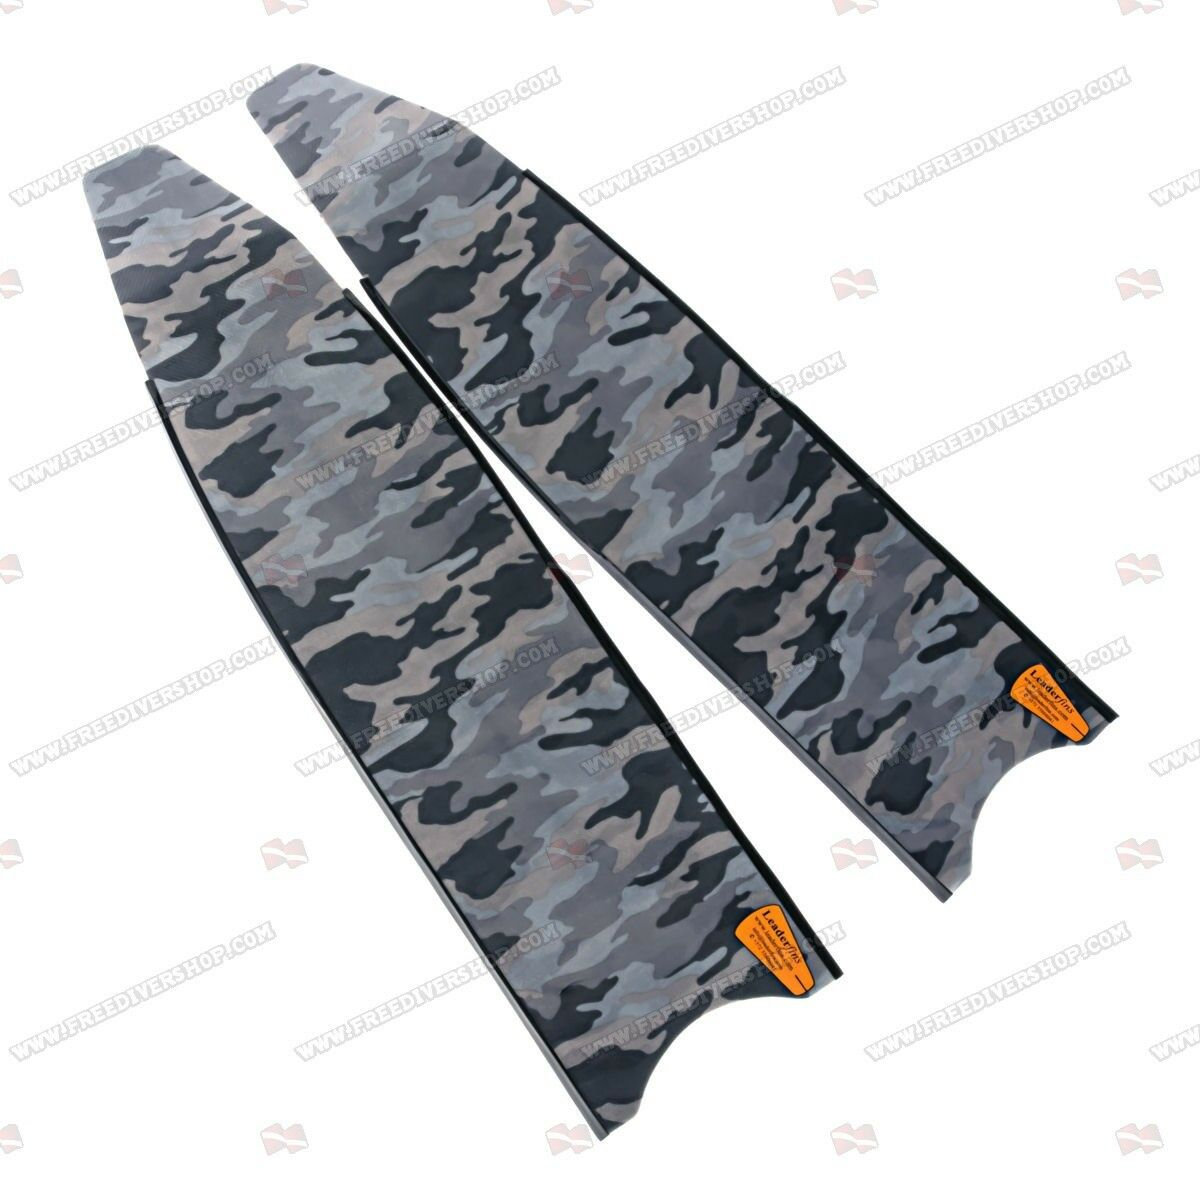 Leaderfins Grey Camouflage Freediving Spearfishing Blades (1 Pair    2 Blades)  take up to 70% off